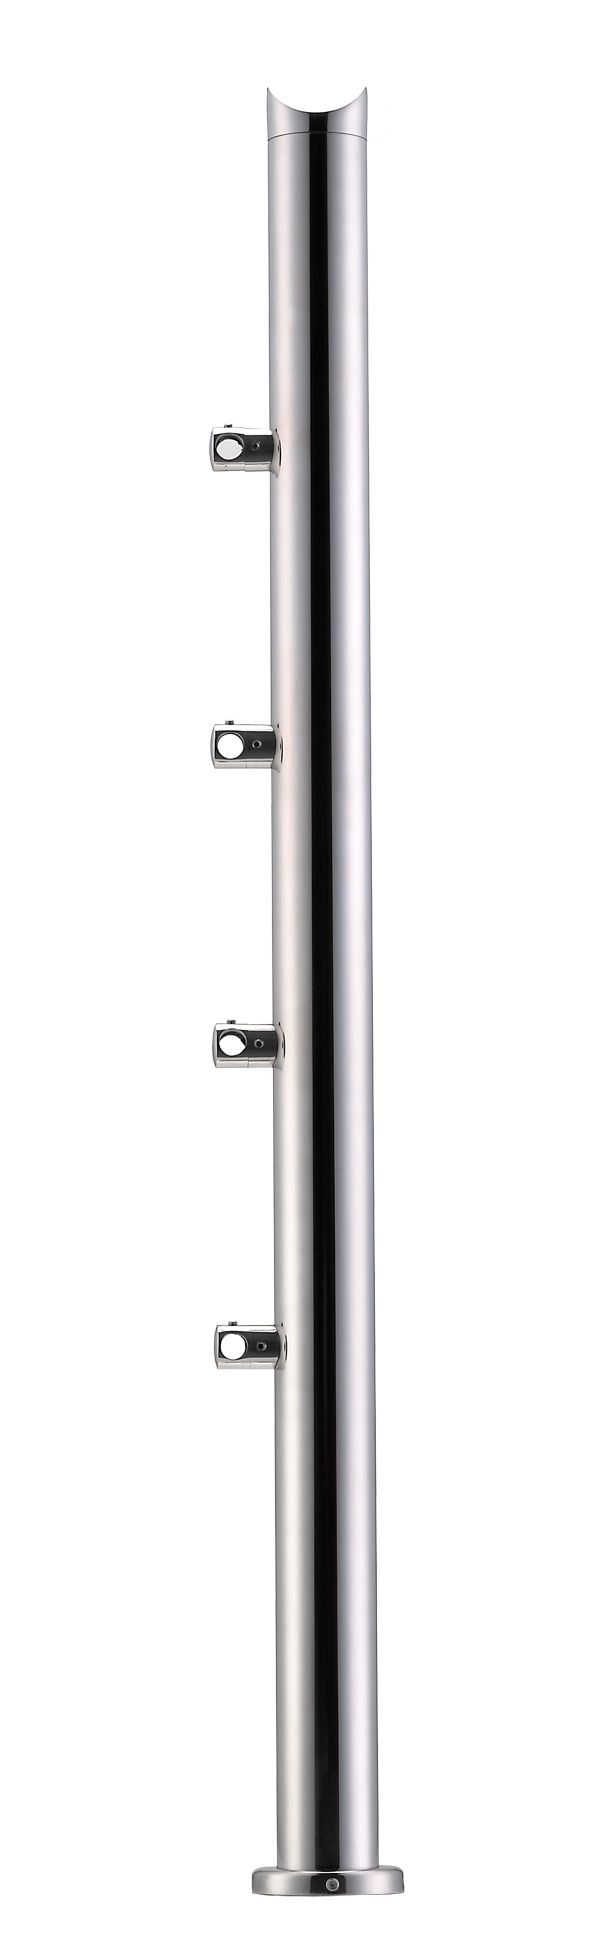 Stainless Steel Balustrade Posts - Tubular - SS:2020478A